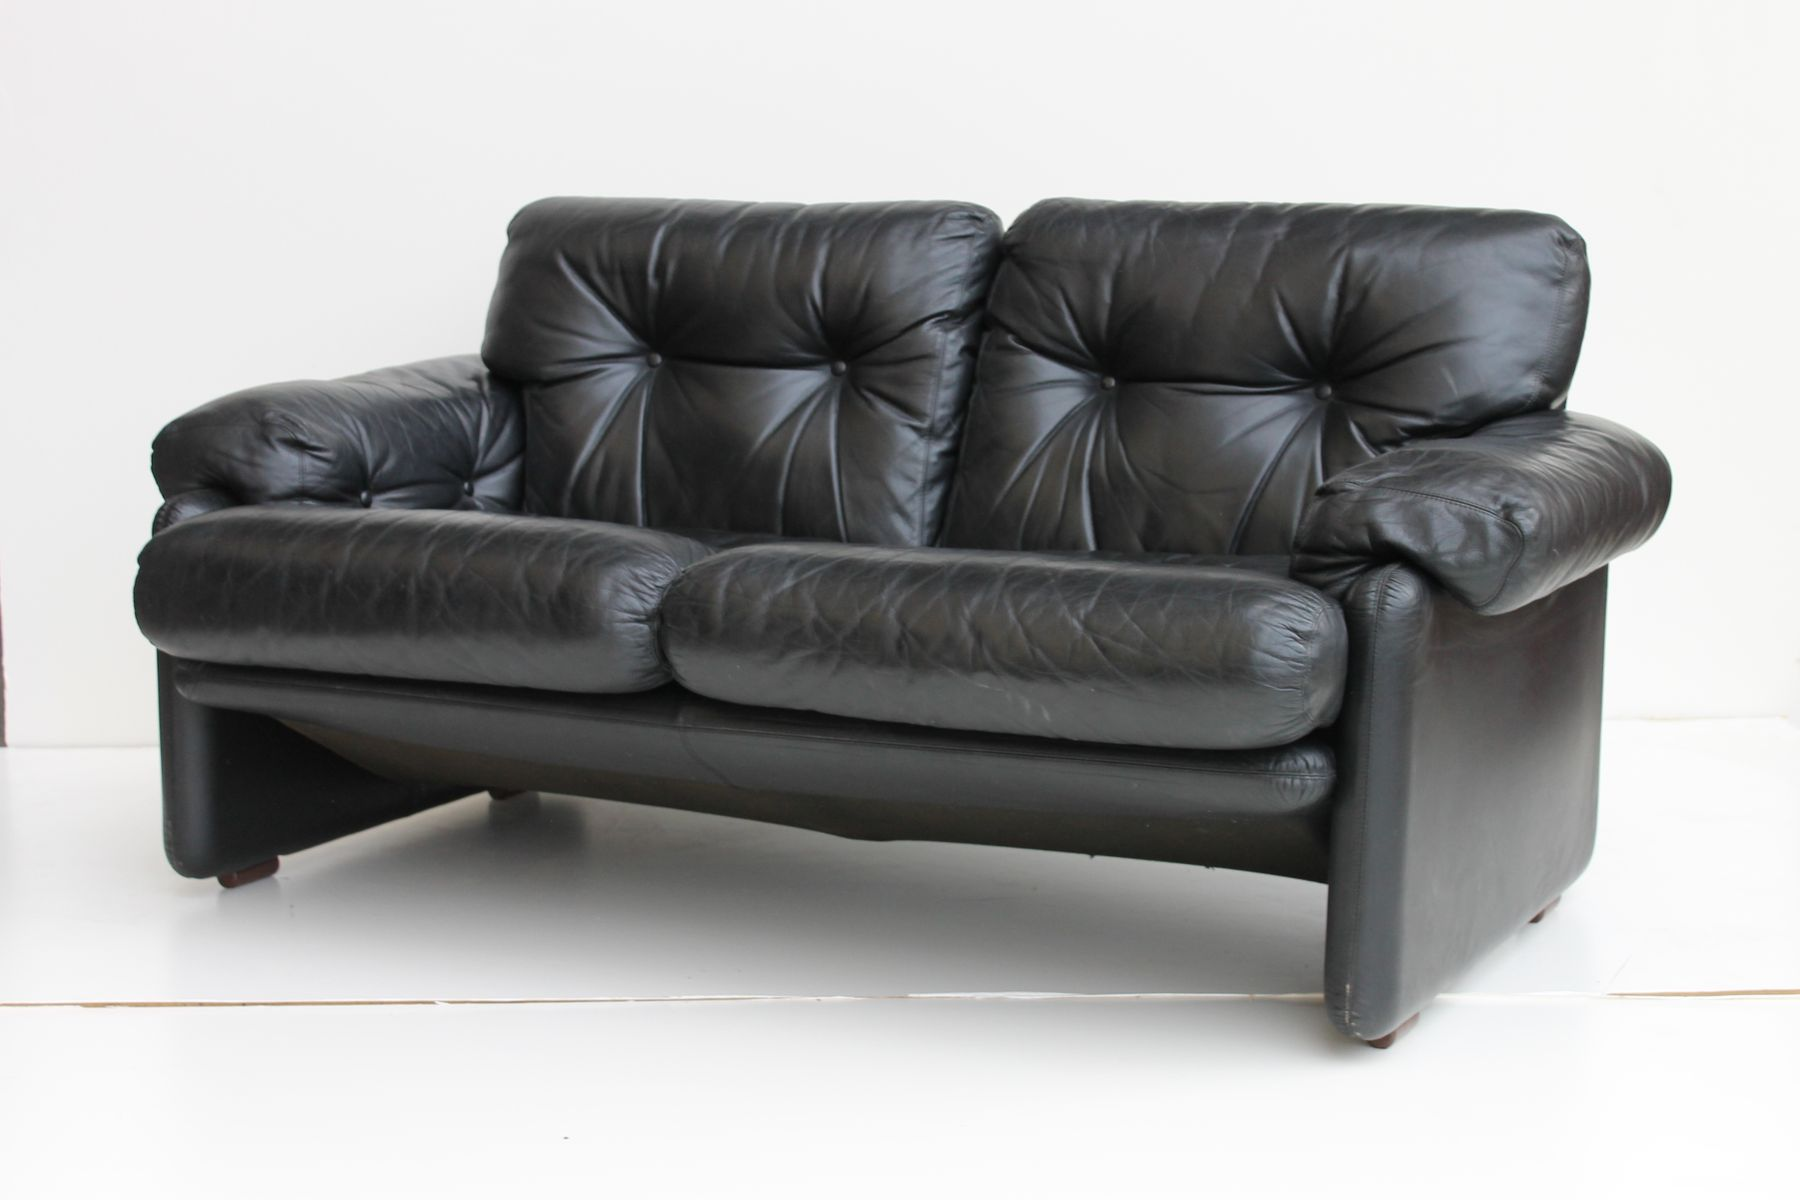 Coronado black leather loveseat by tobia scarpa for b b italia 1970s for sale at pamono Loveseat black